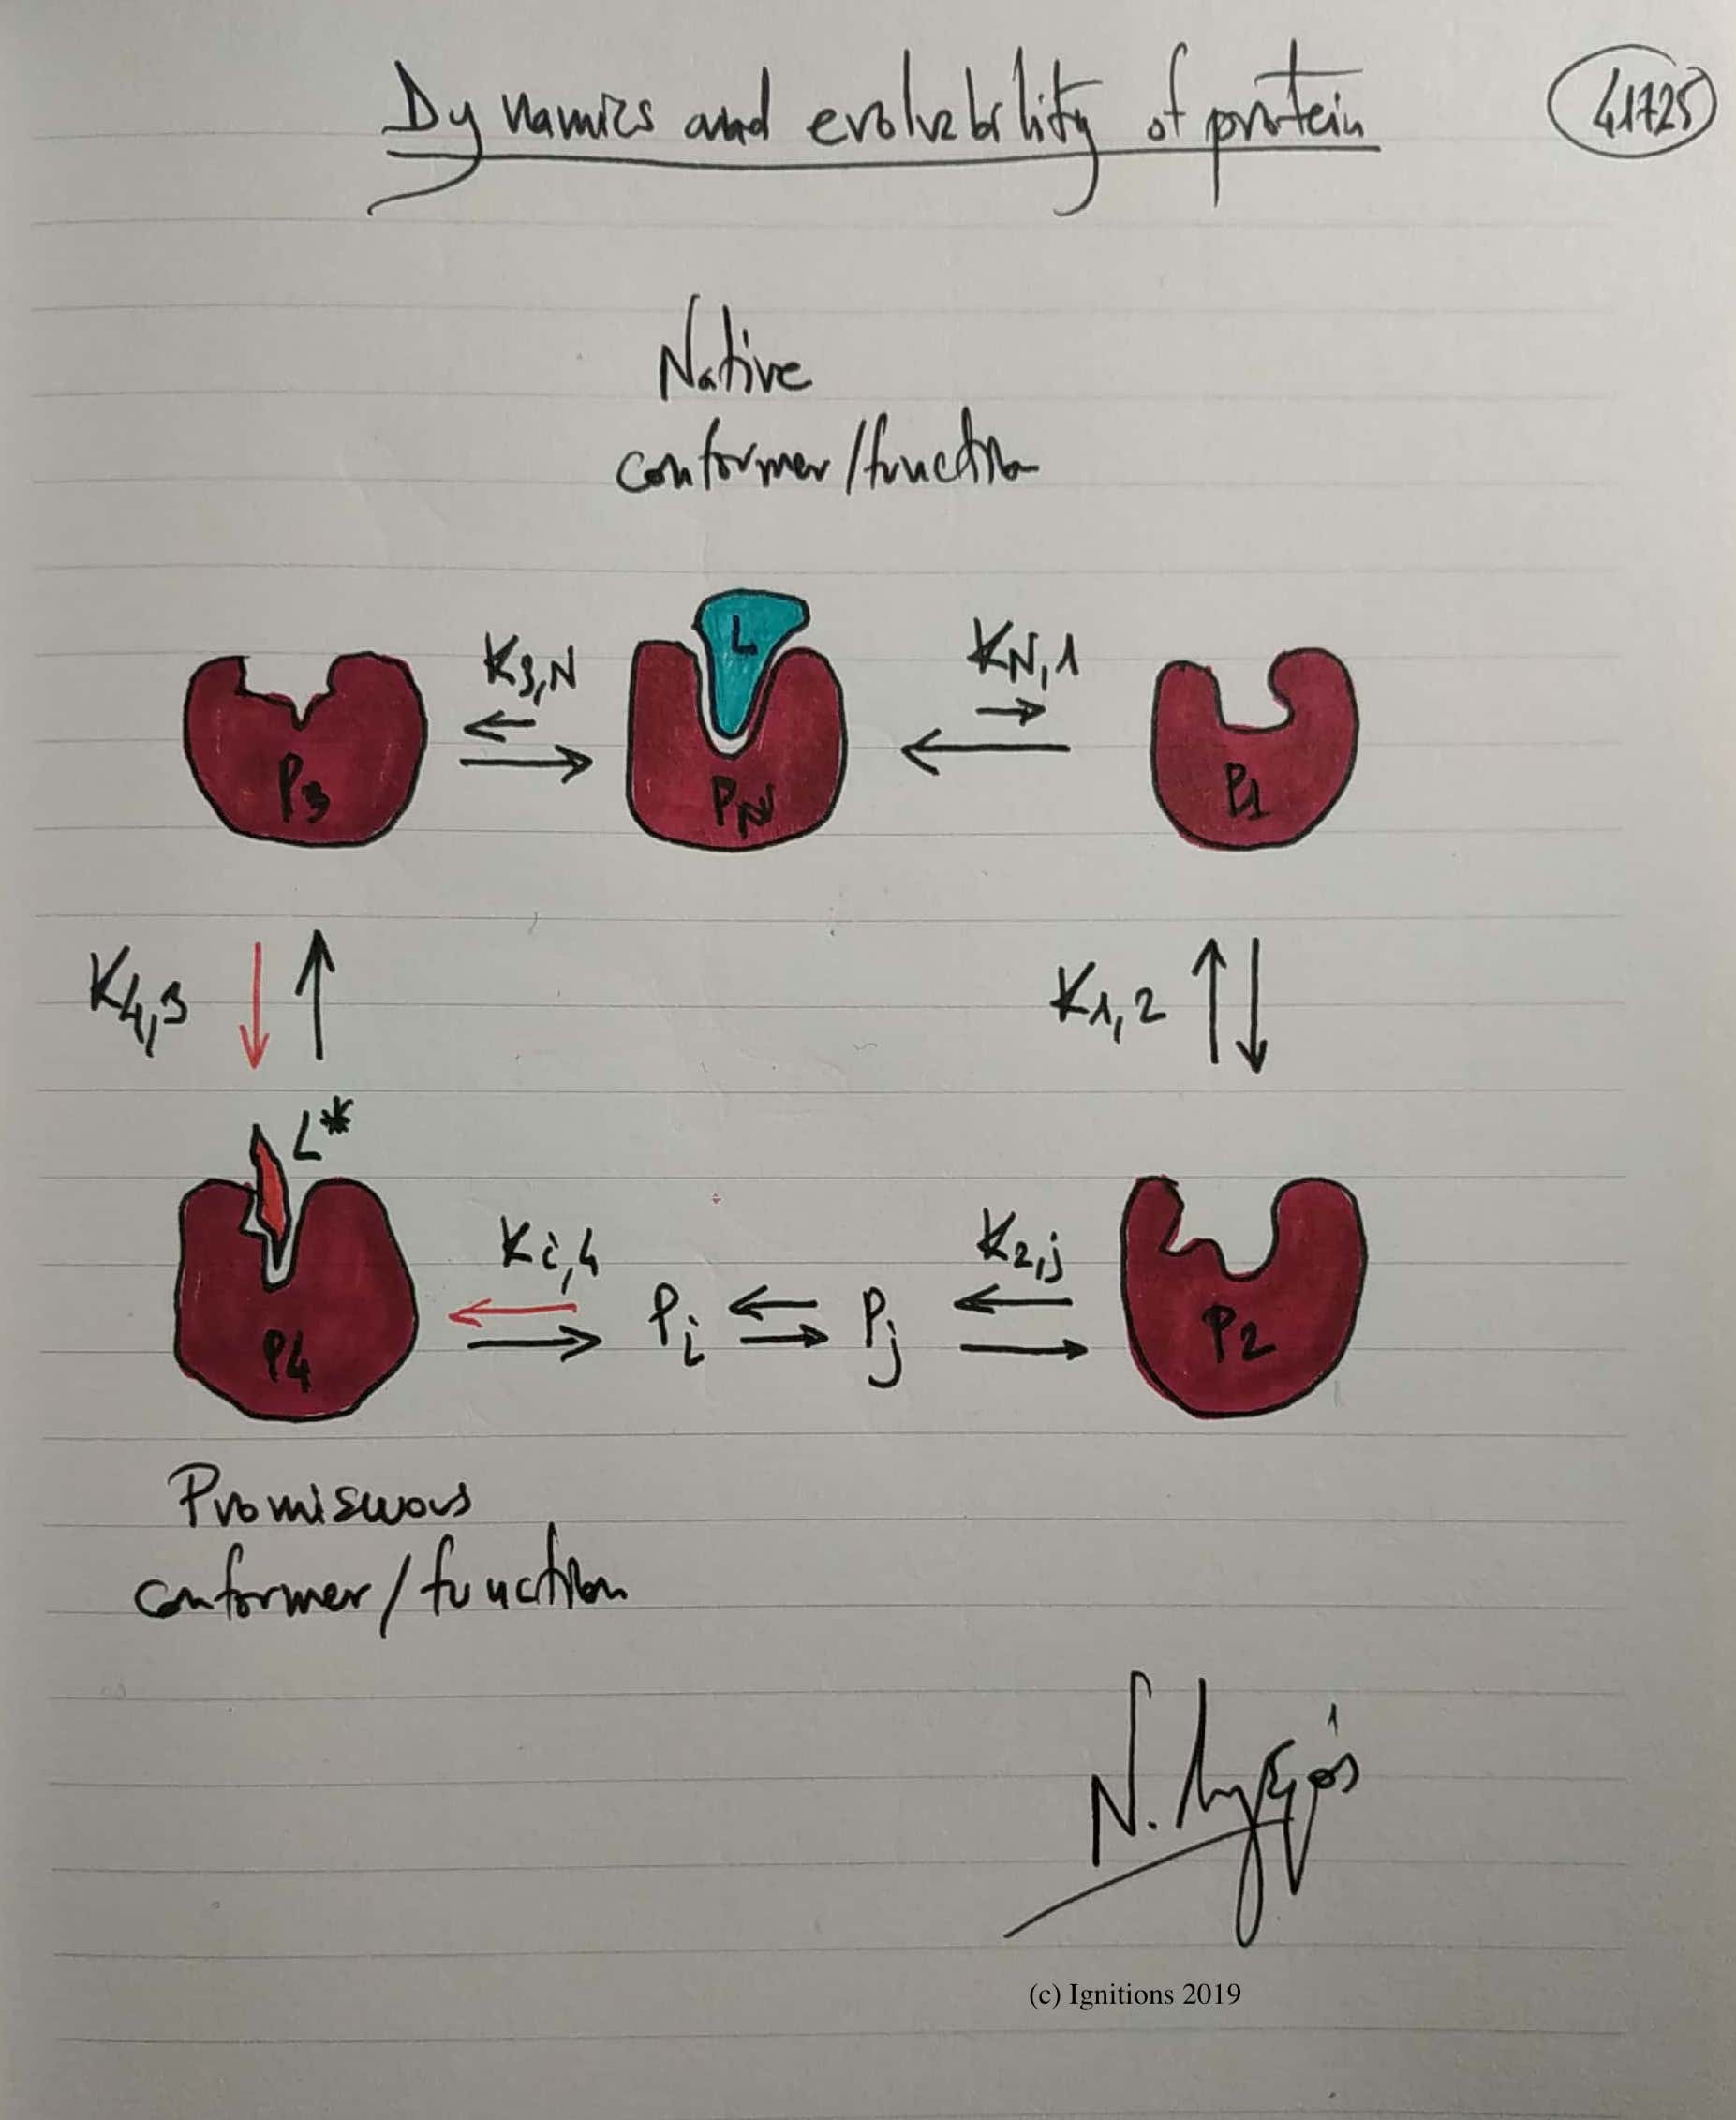 Dynamics and evolvability of protein. (Dessin)